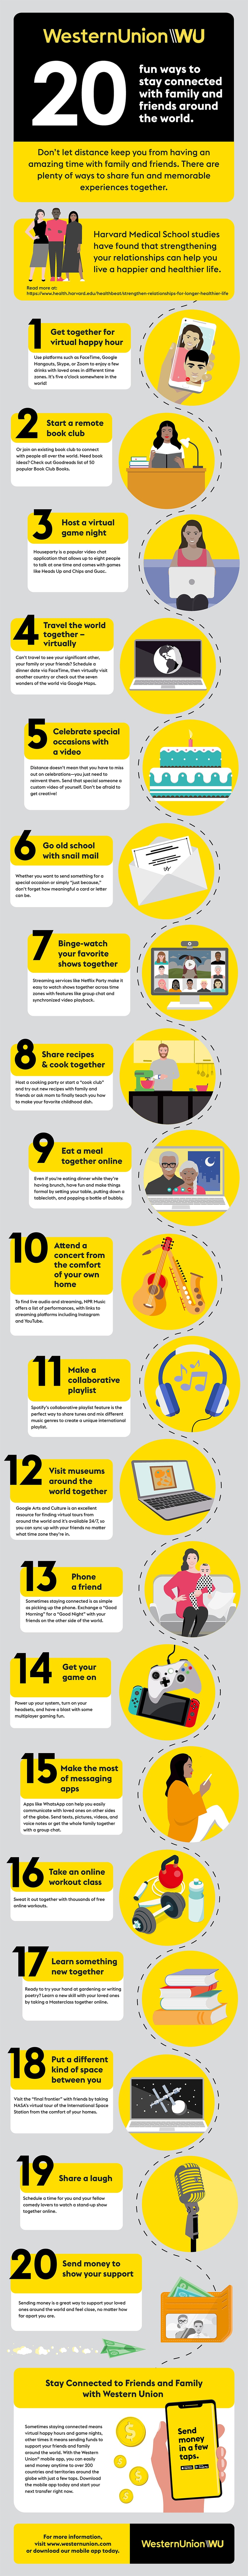 20 ways to stay in touch infographic by Western Union